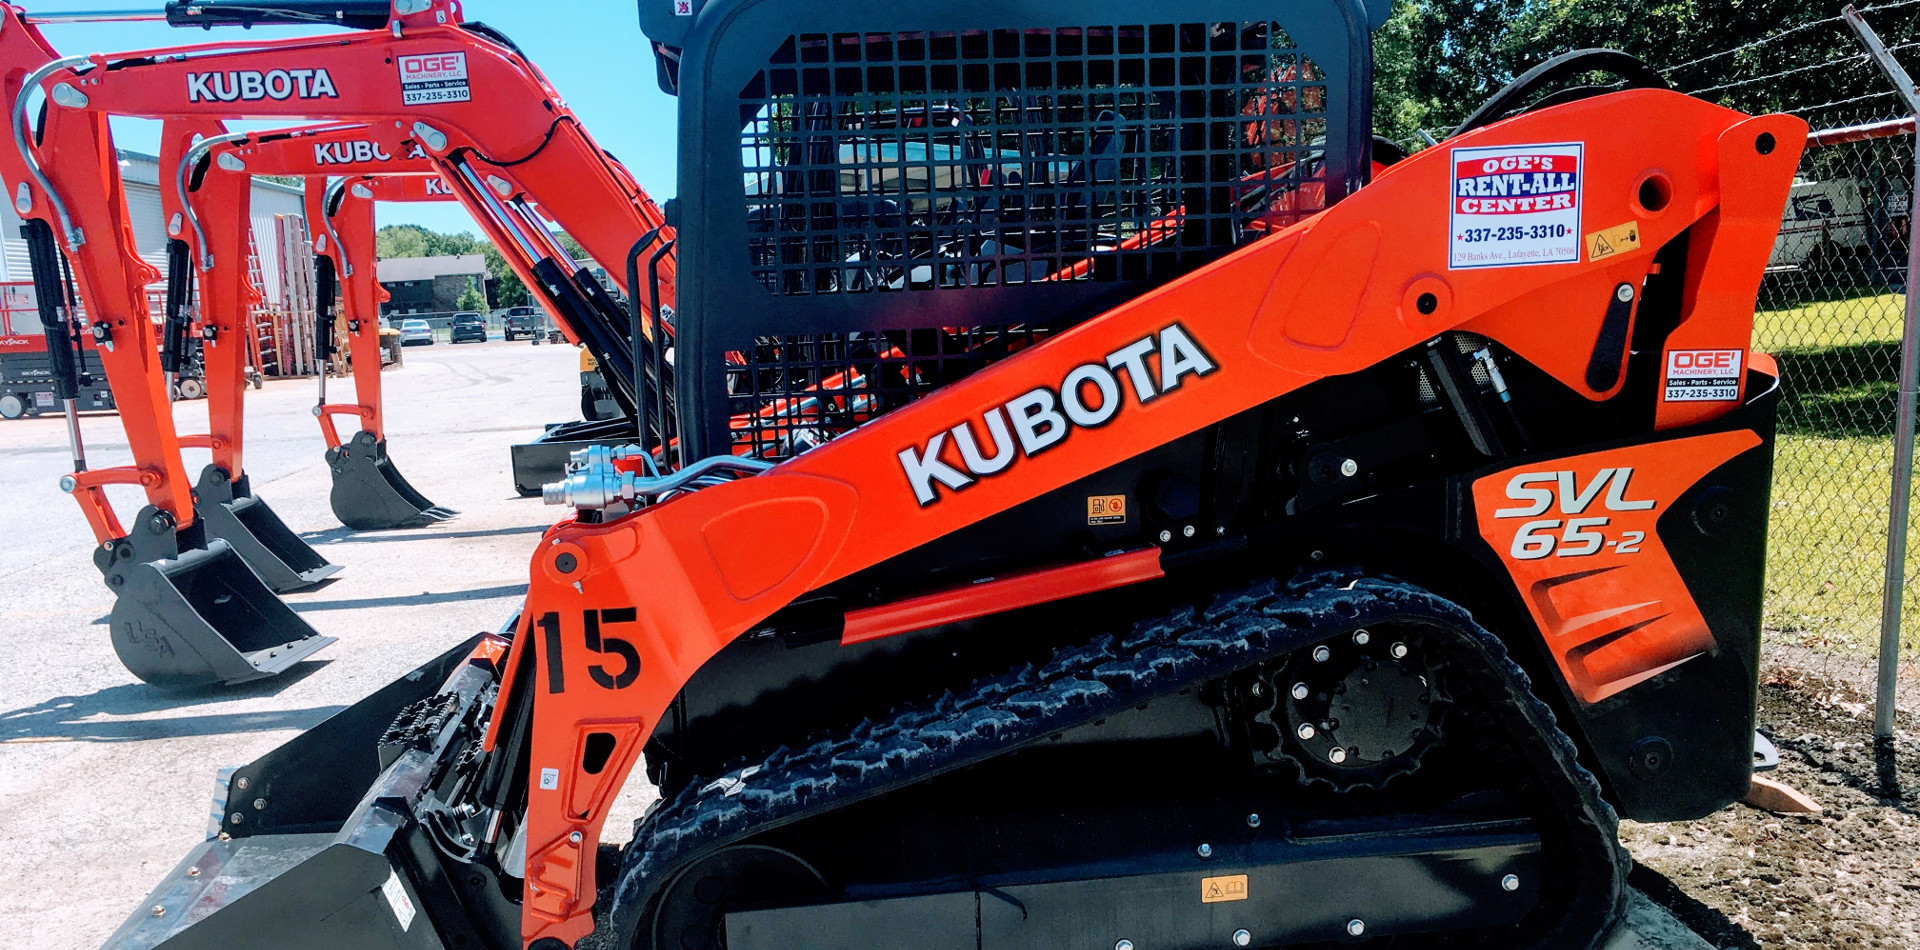 Construction Equipment & Tool Rentals in Lafayette Louisiana, Opelousas, Crowley, New Iberia, Lake Charles LA, Baton Rouge